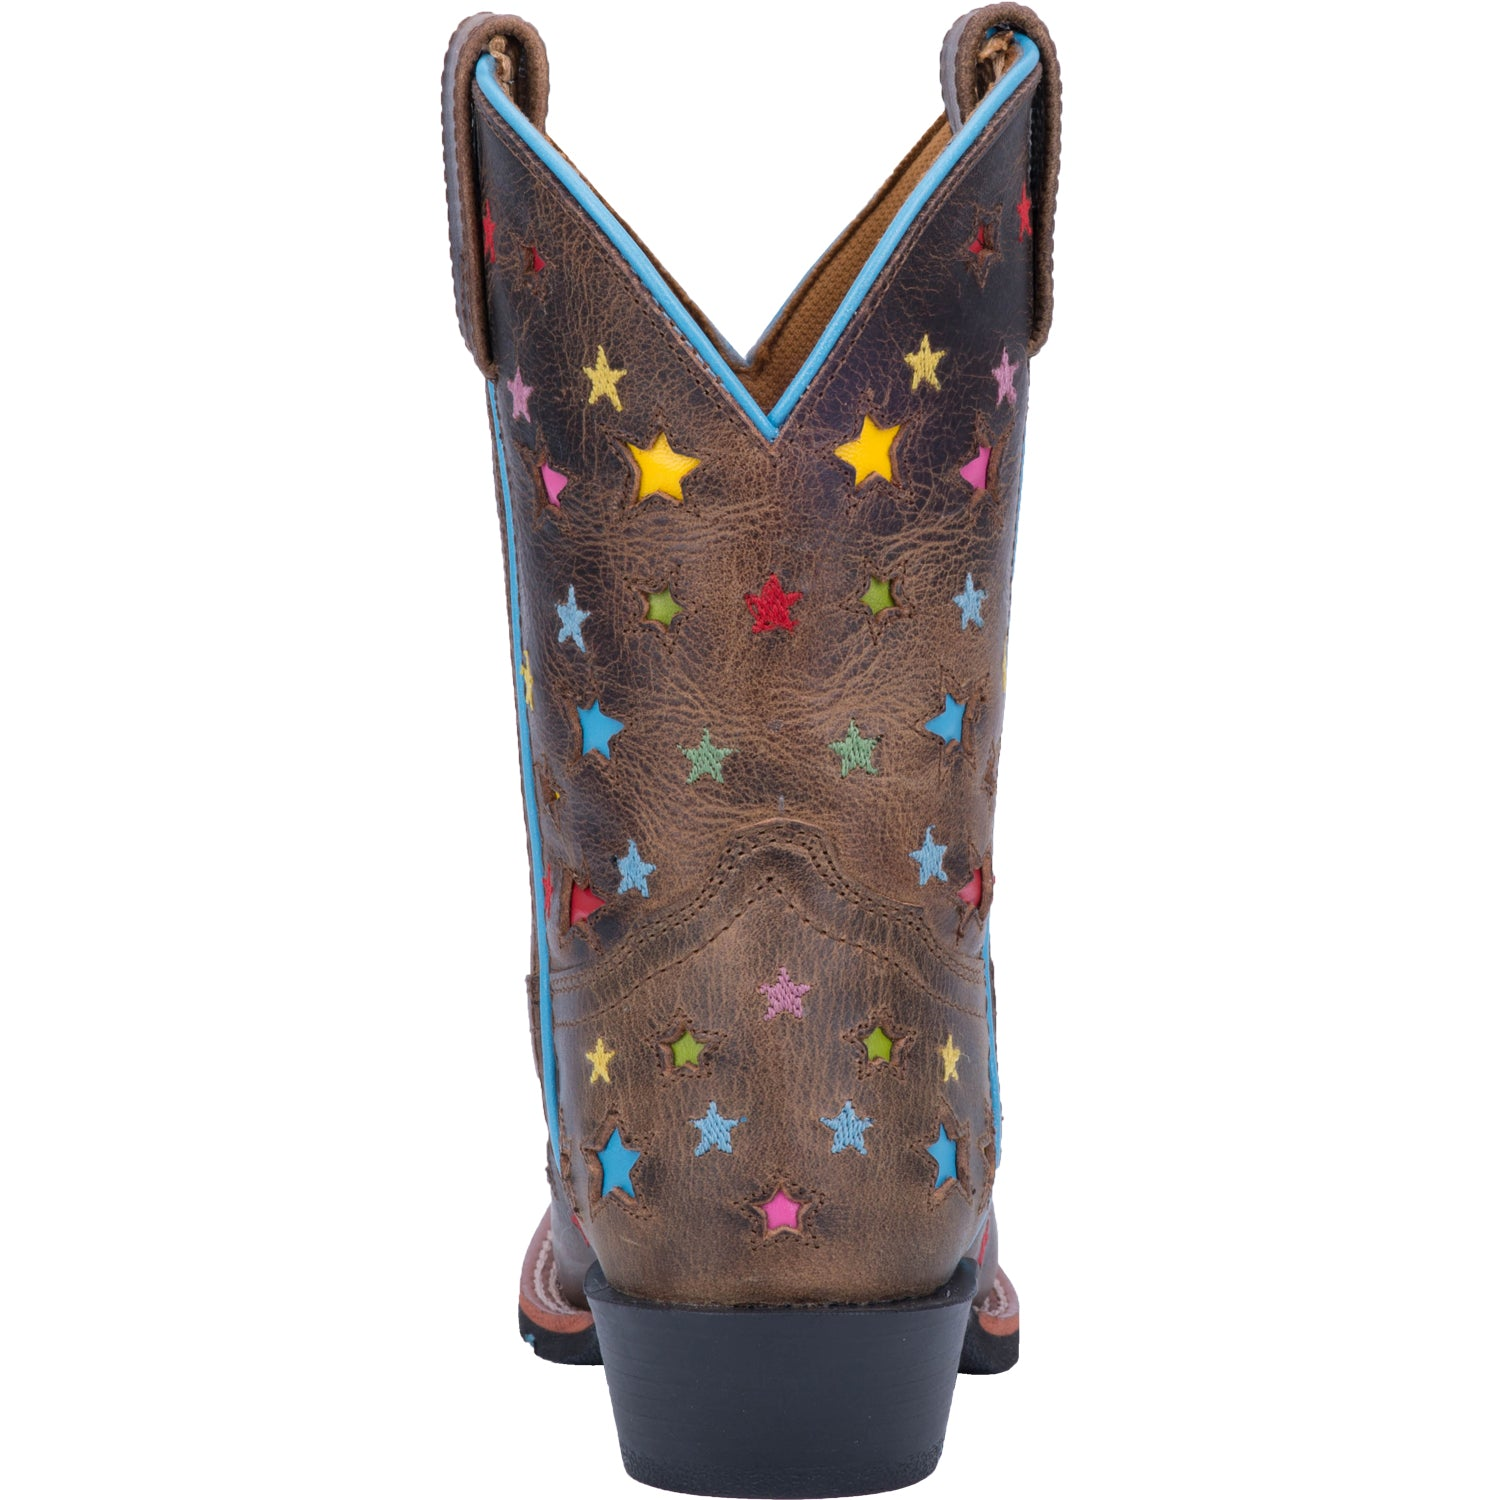 STARLETT LEATHER YOUTH BOOT 15521816838186